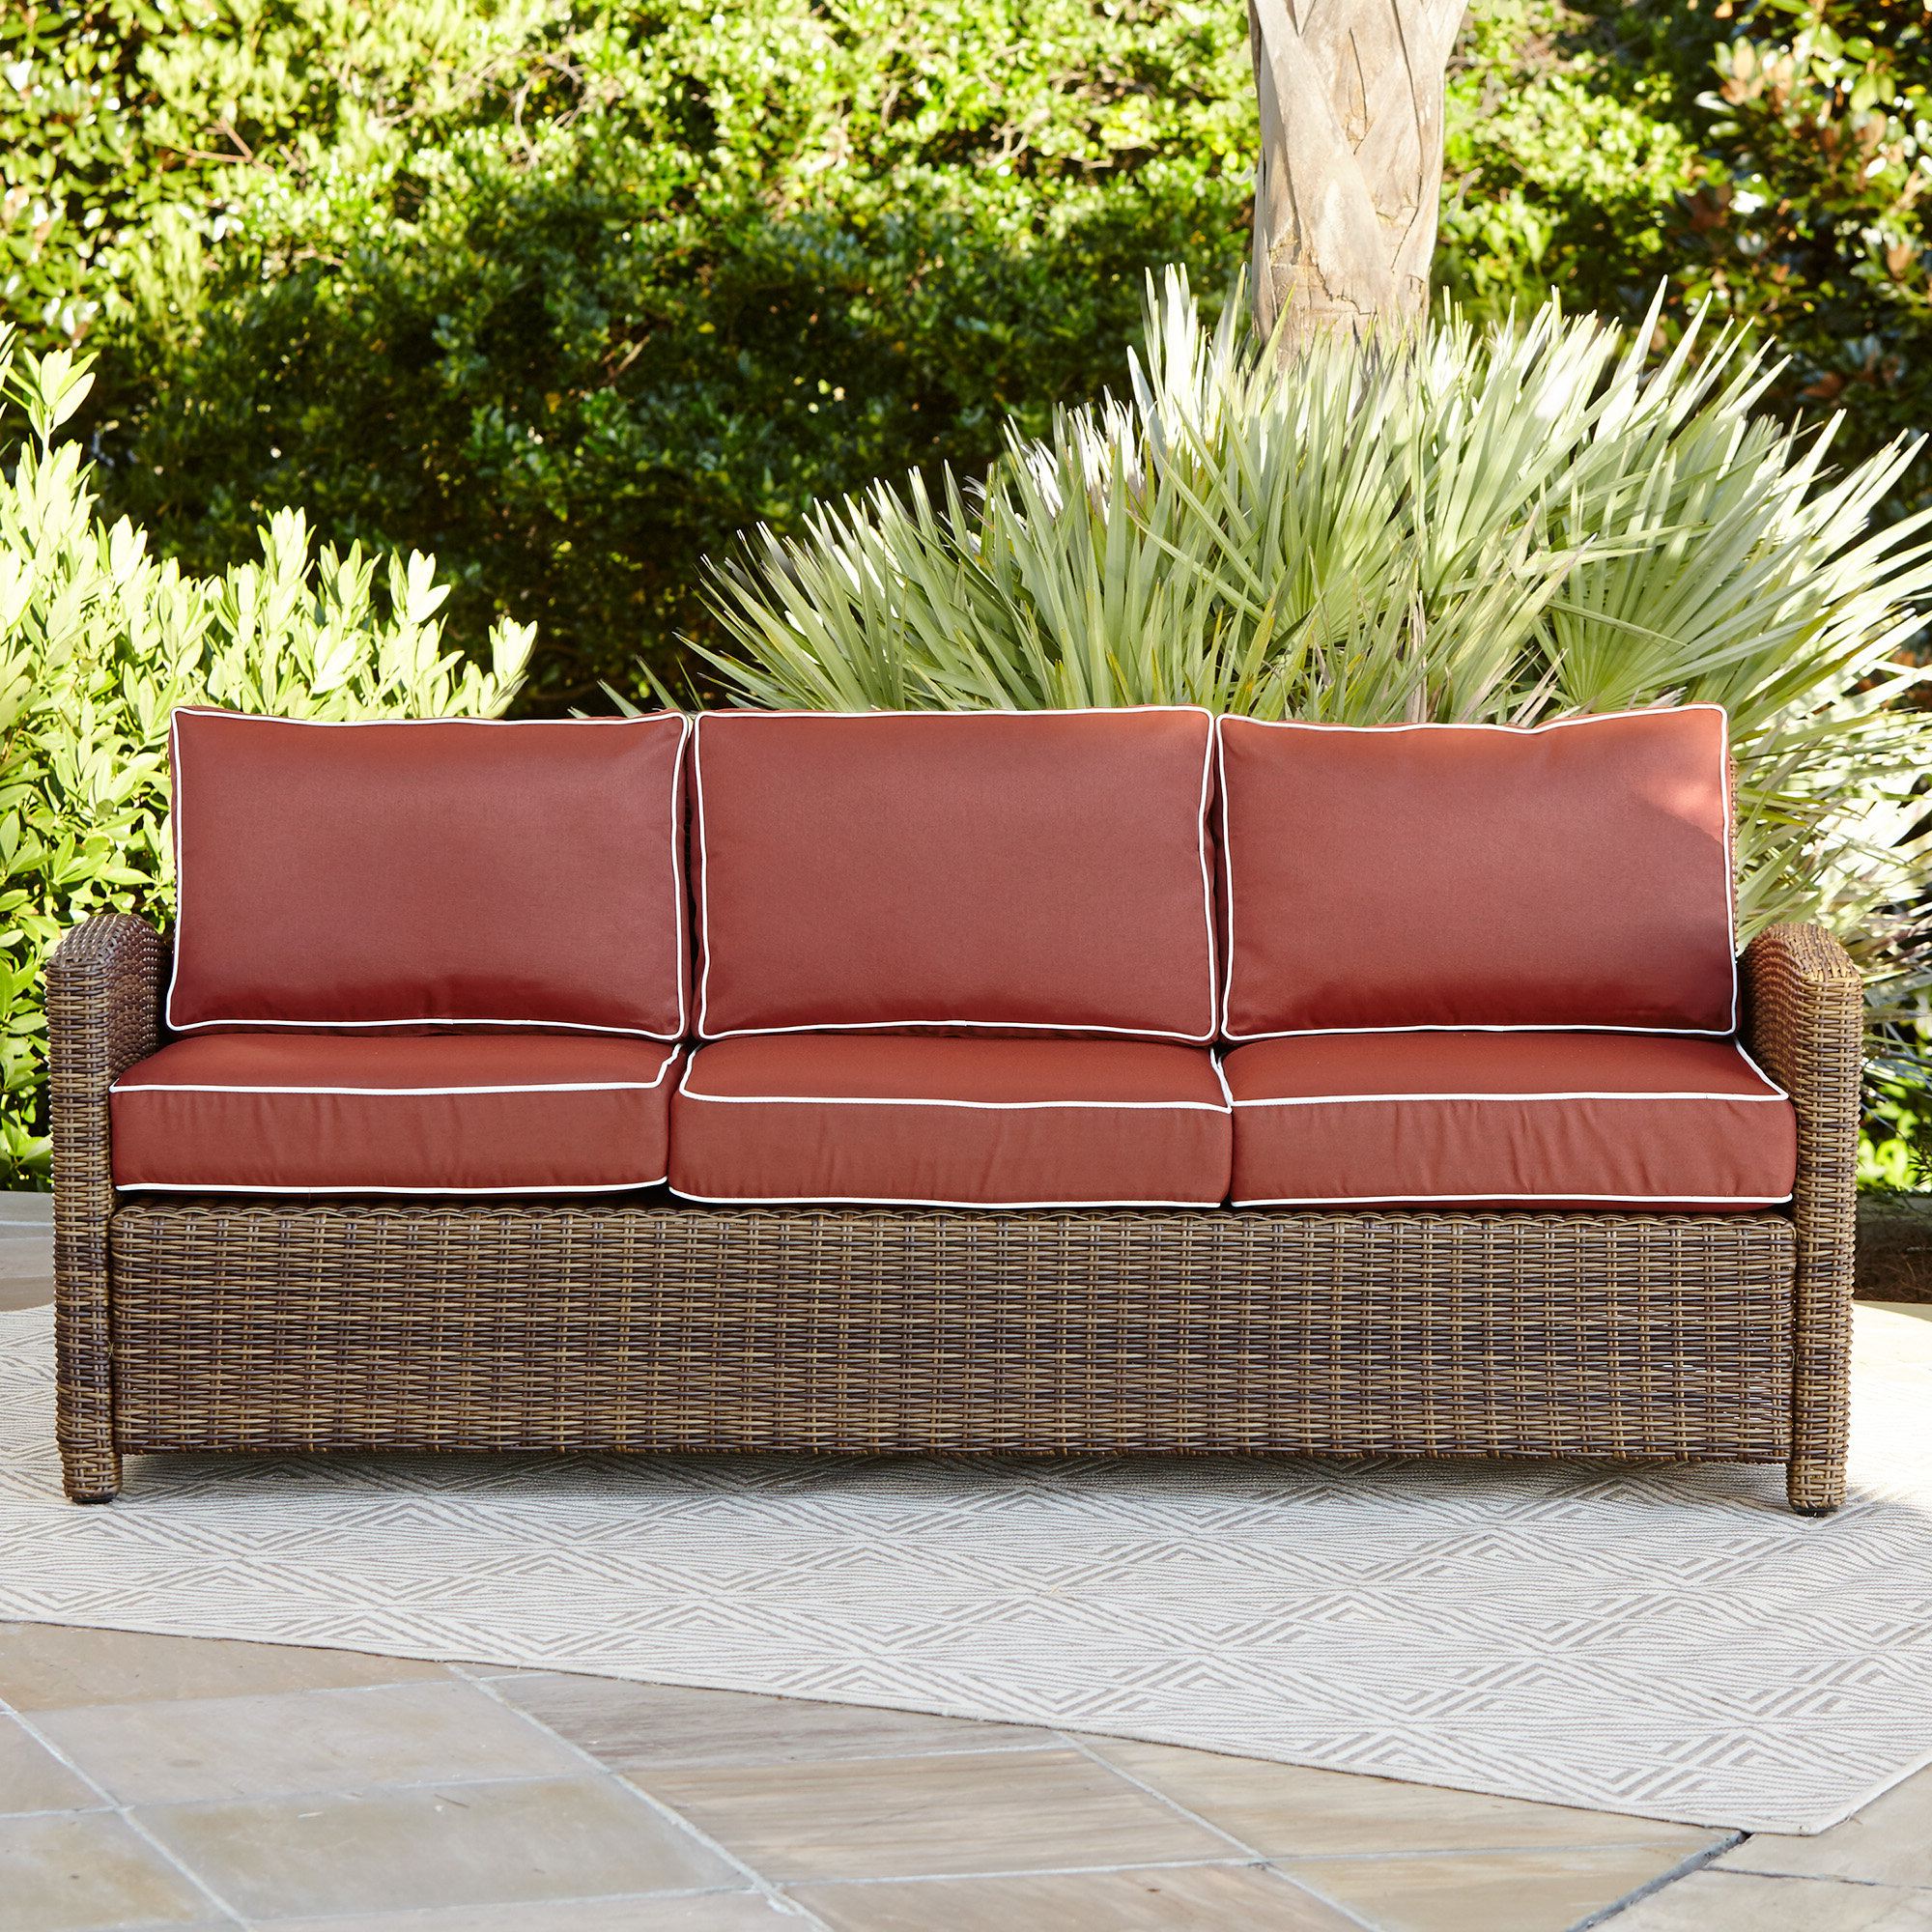 Most Current Lawson Patio Sofas With Cushions Throughout Lawson Patio Sofa With Cushions (View 5 of 25)